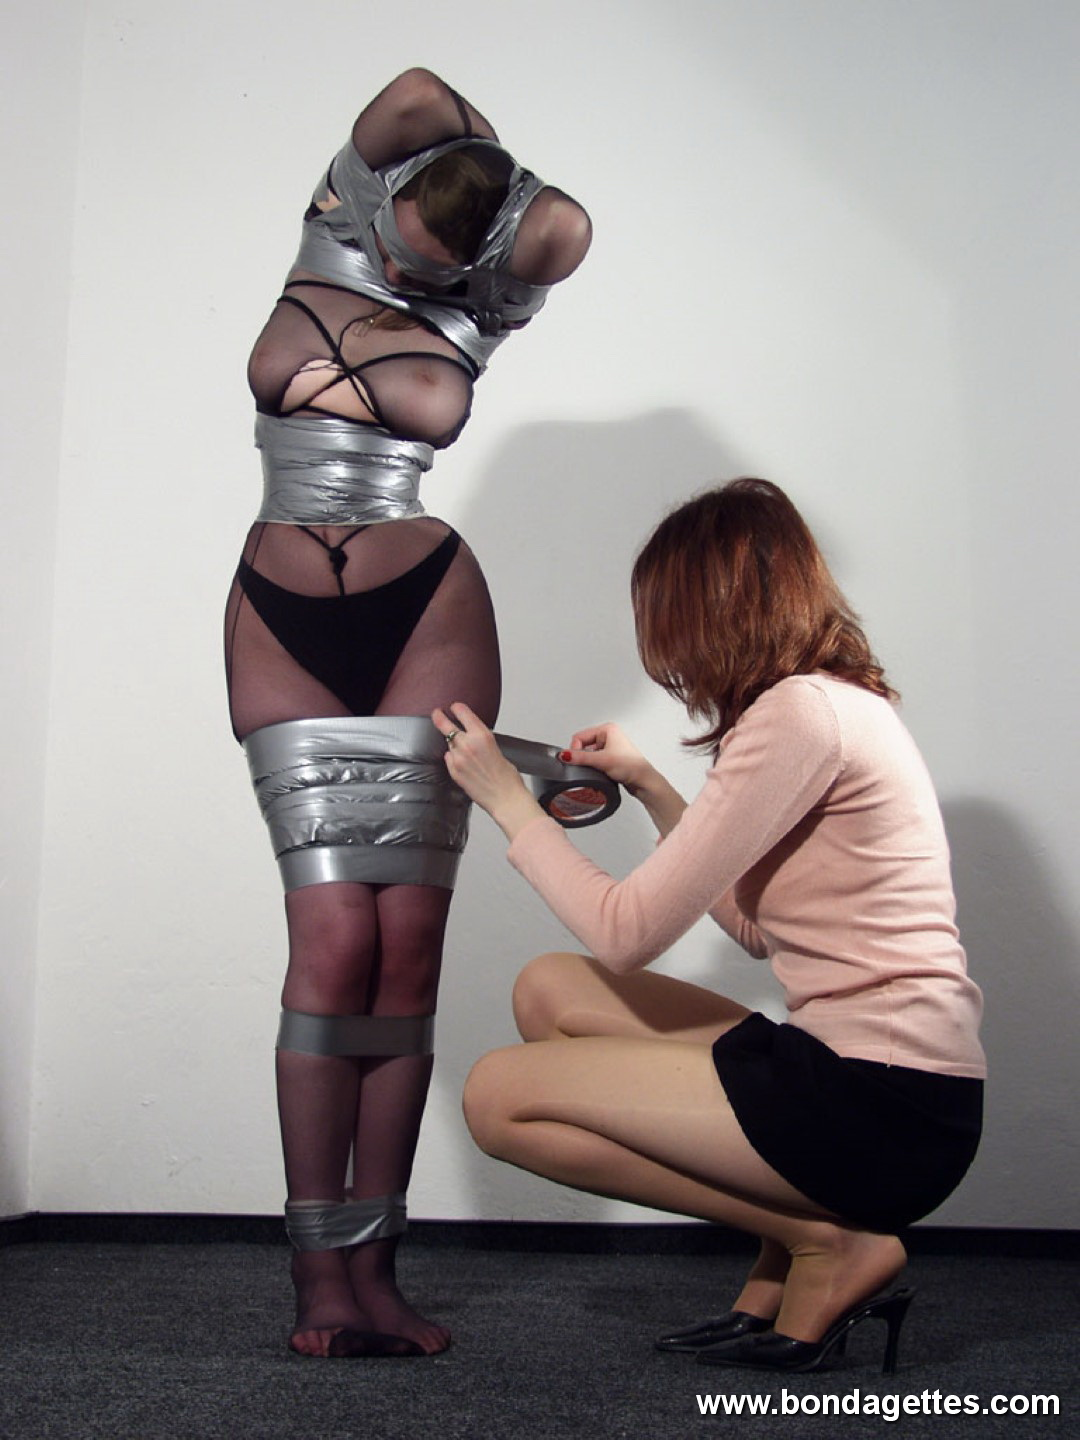 Lady natalie face sits on her mummified slave